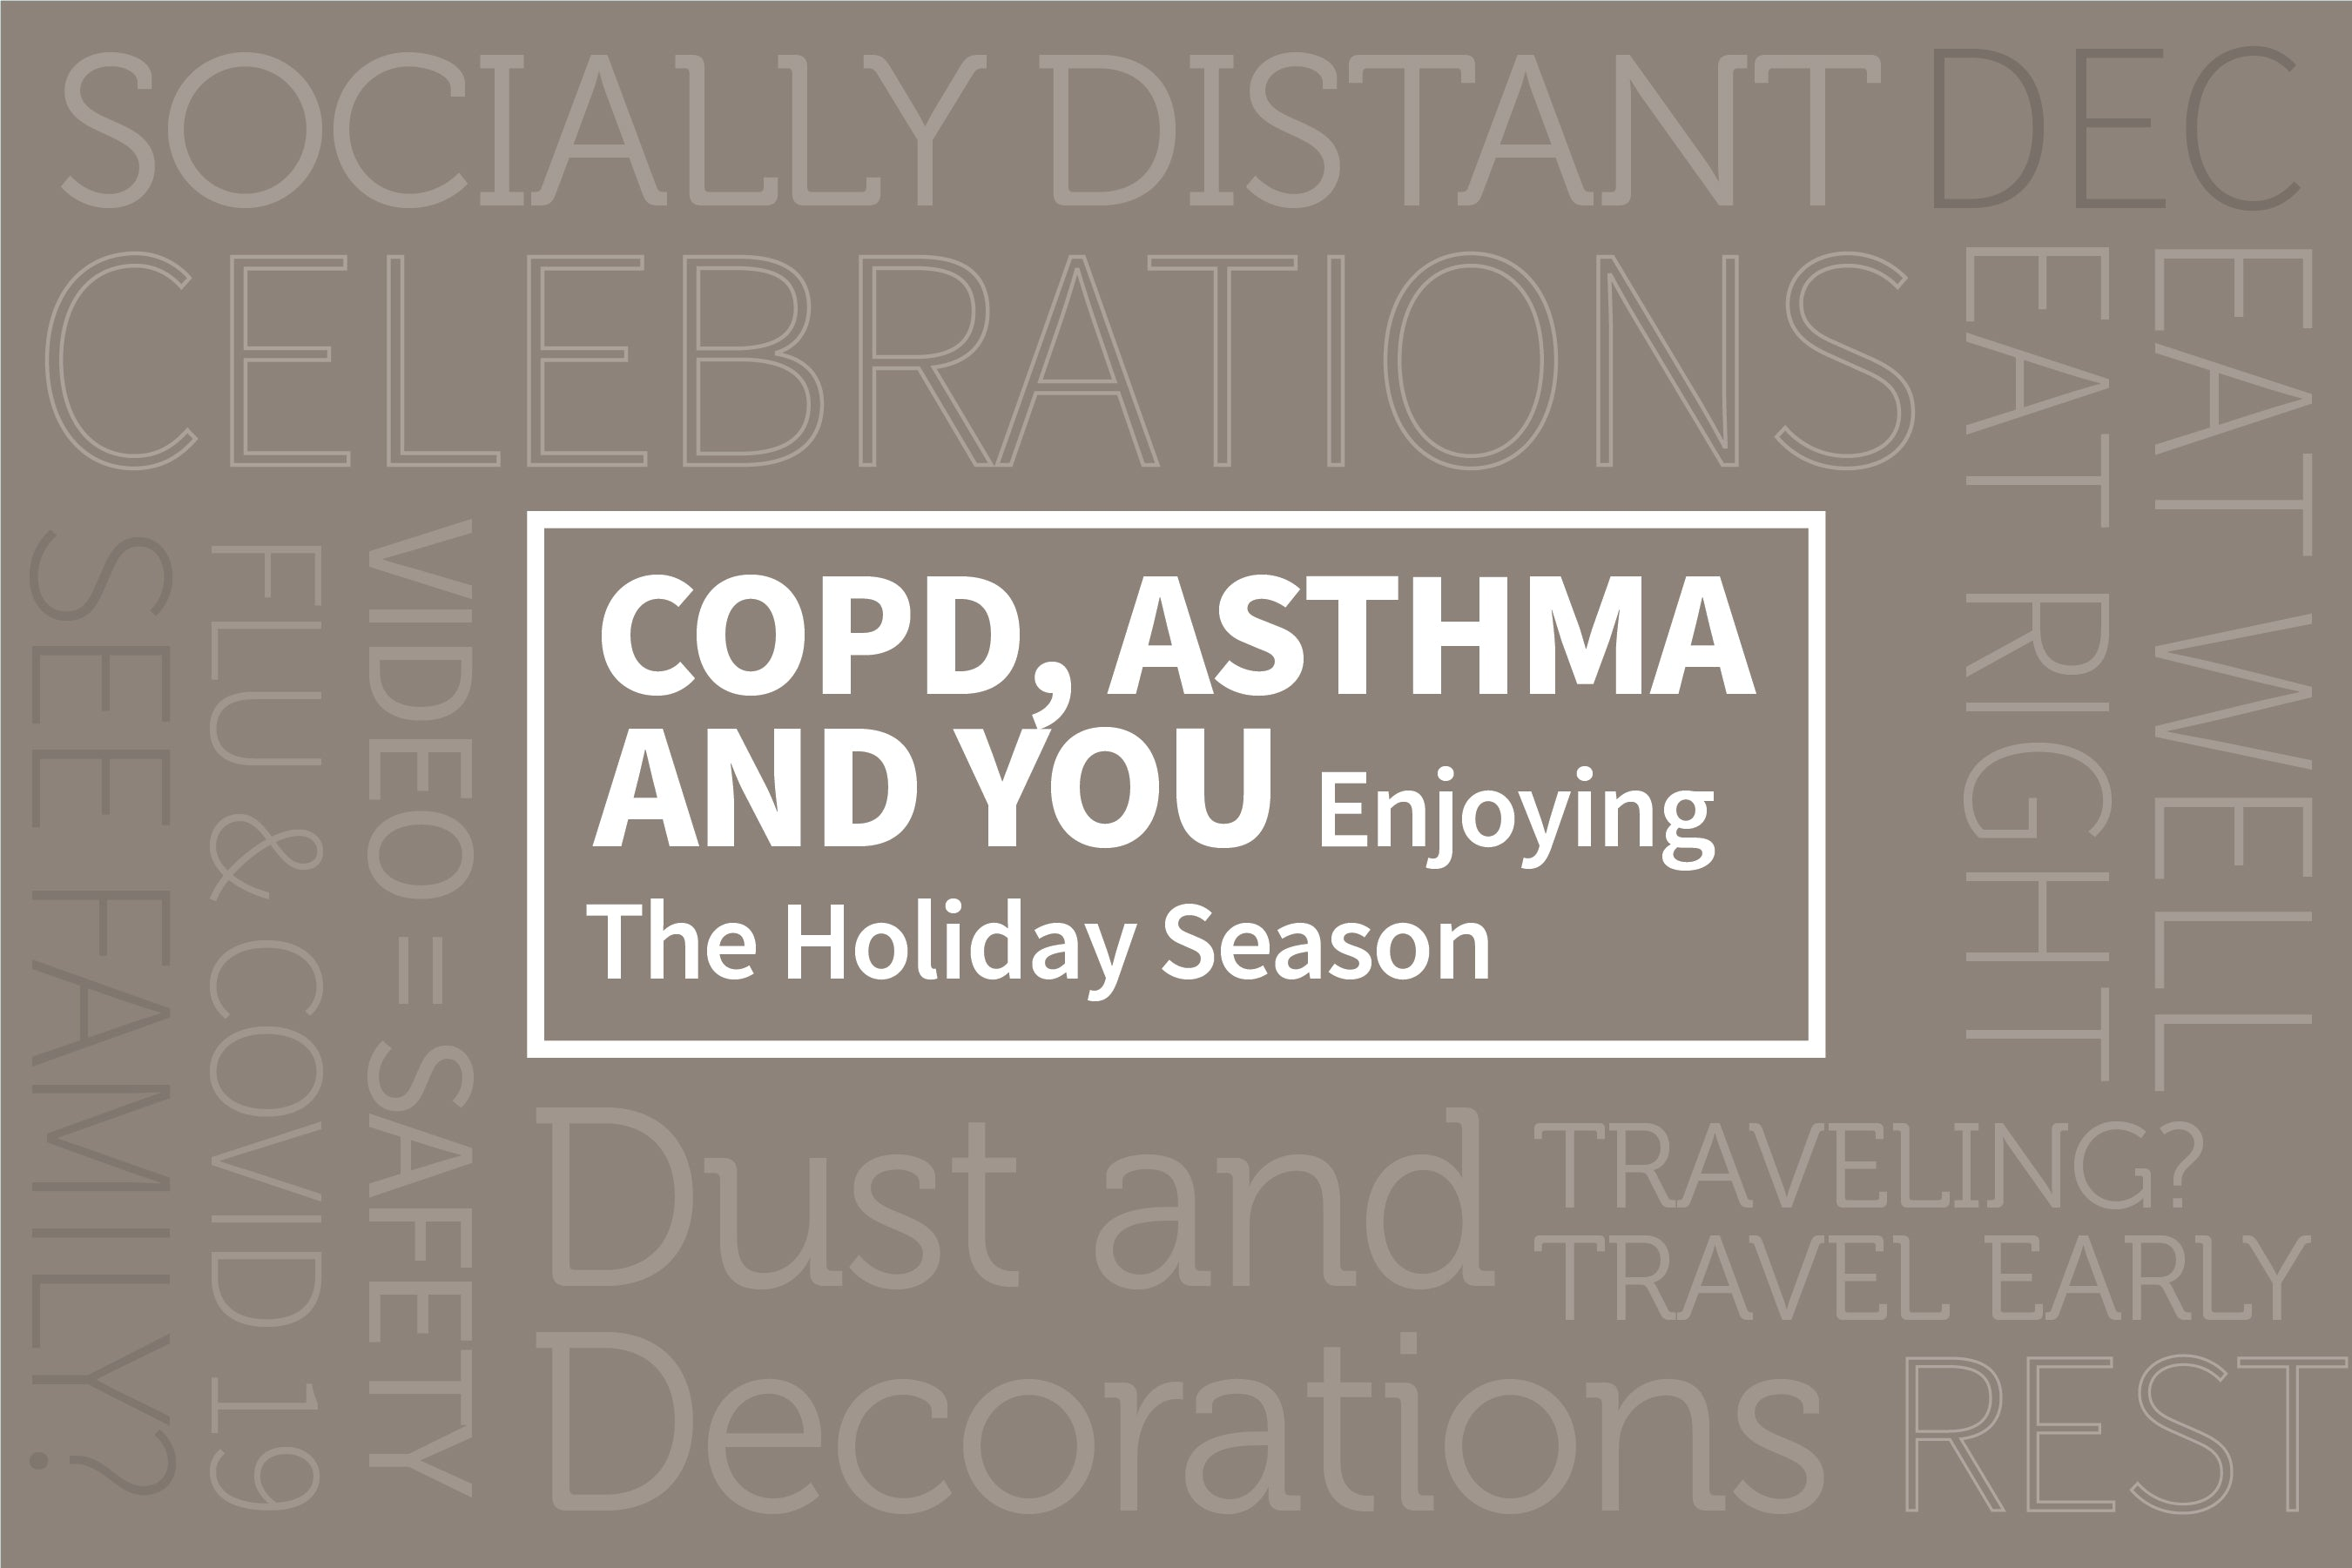 COPD, Asthma, and You: Enjoying the Holiday Season